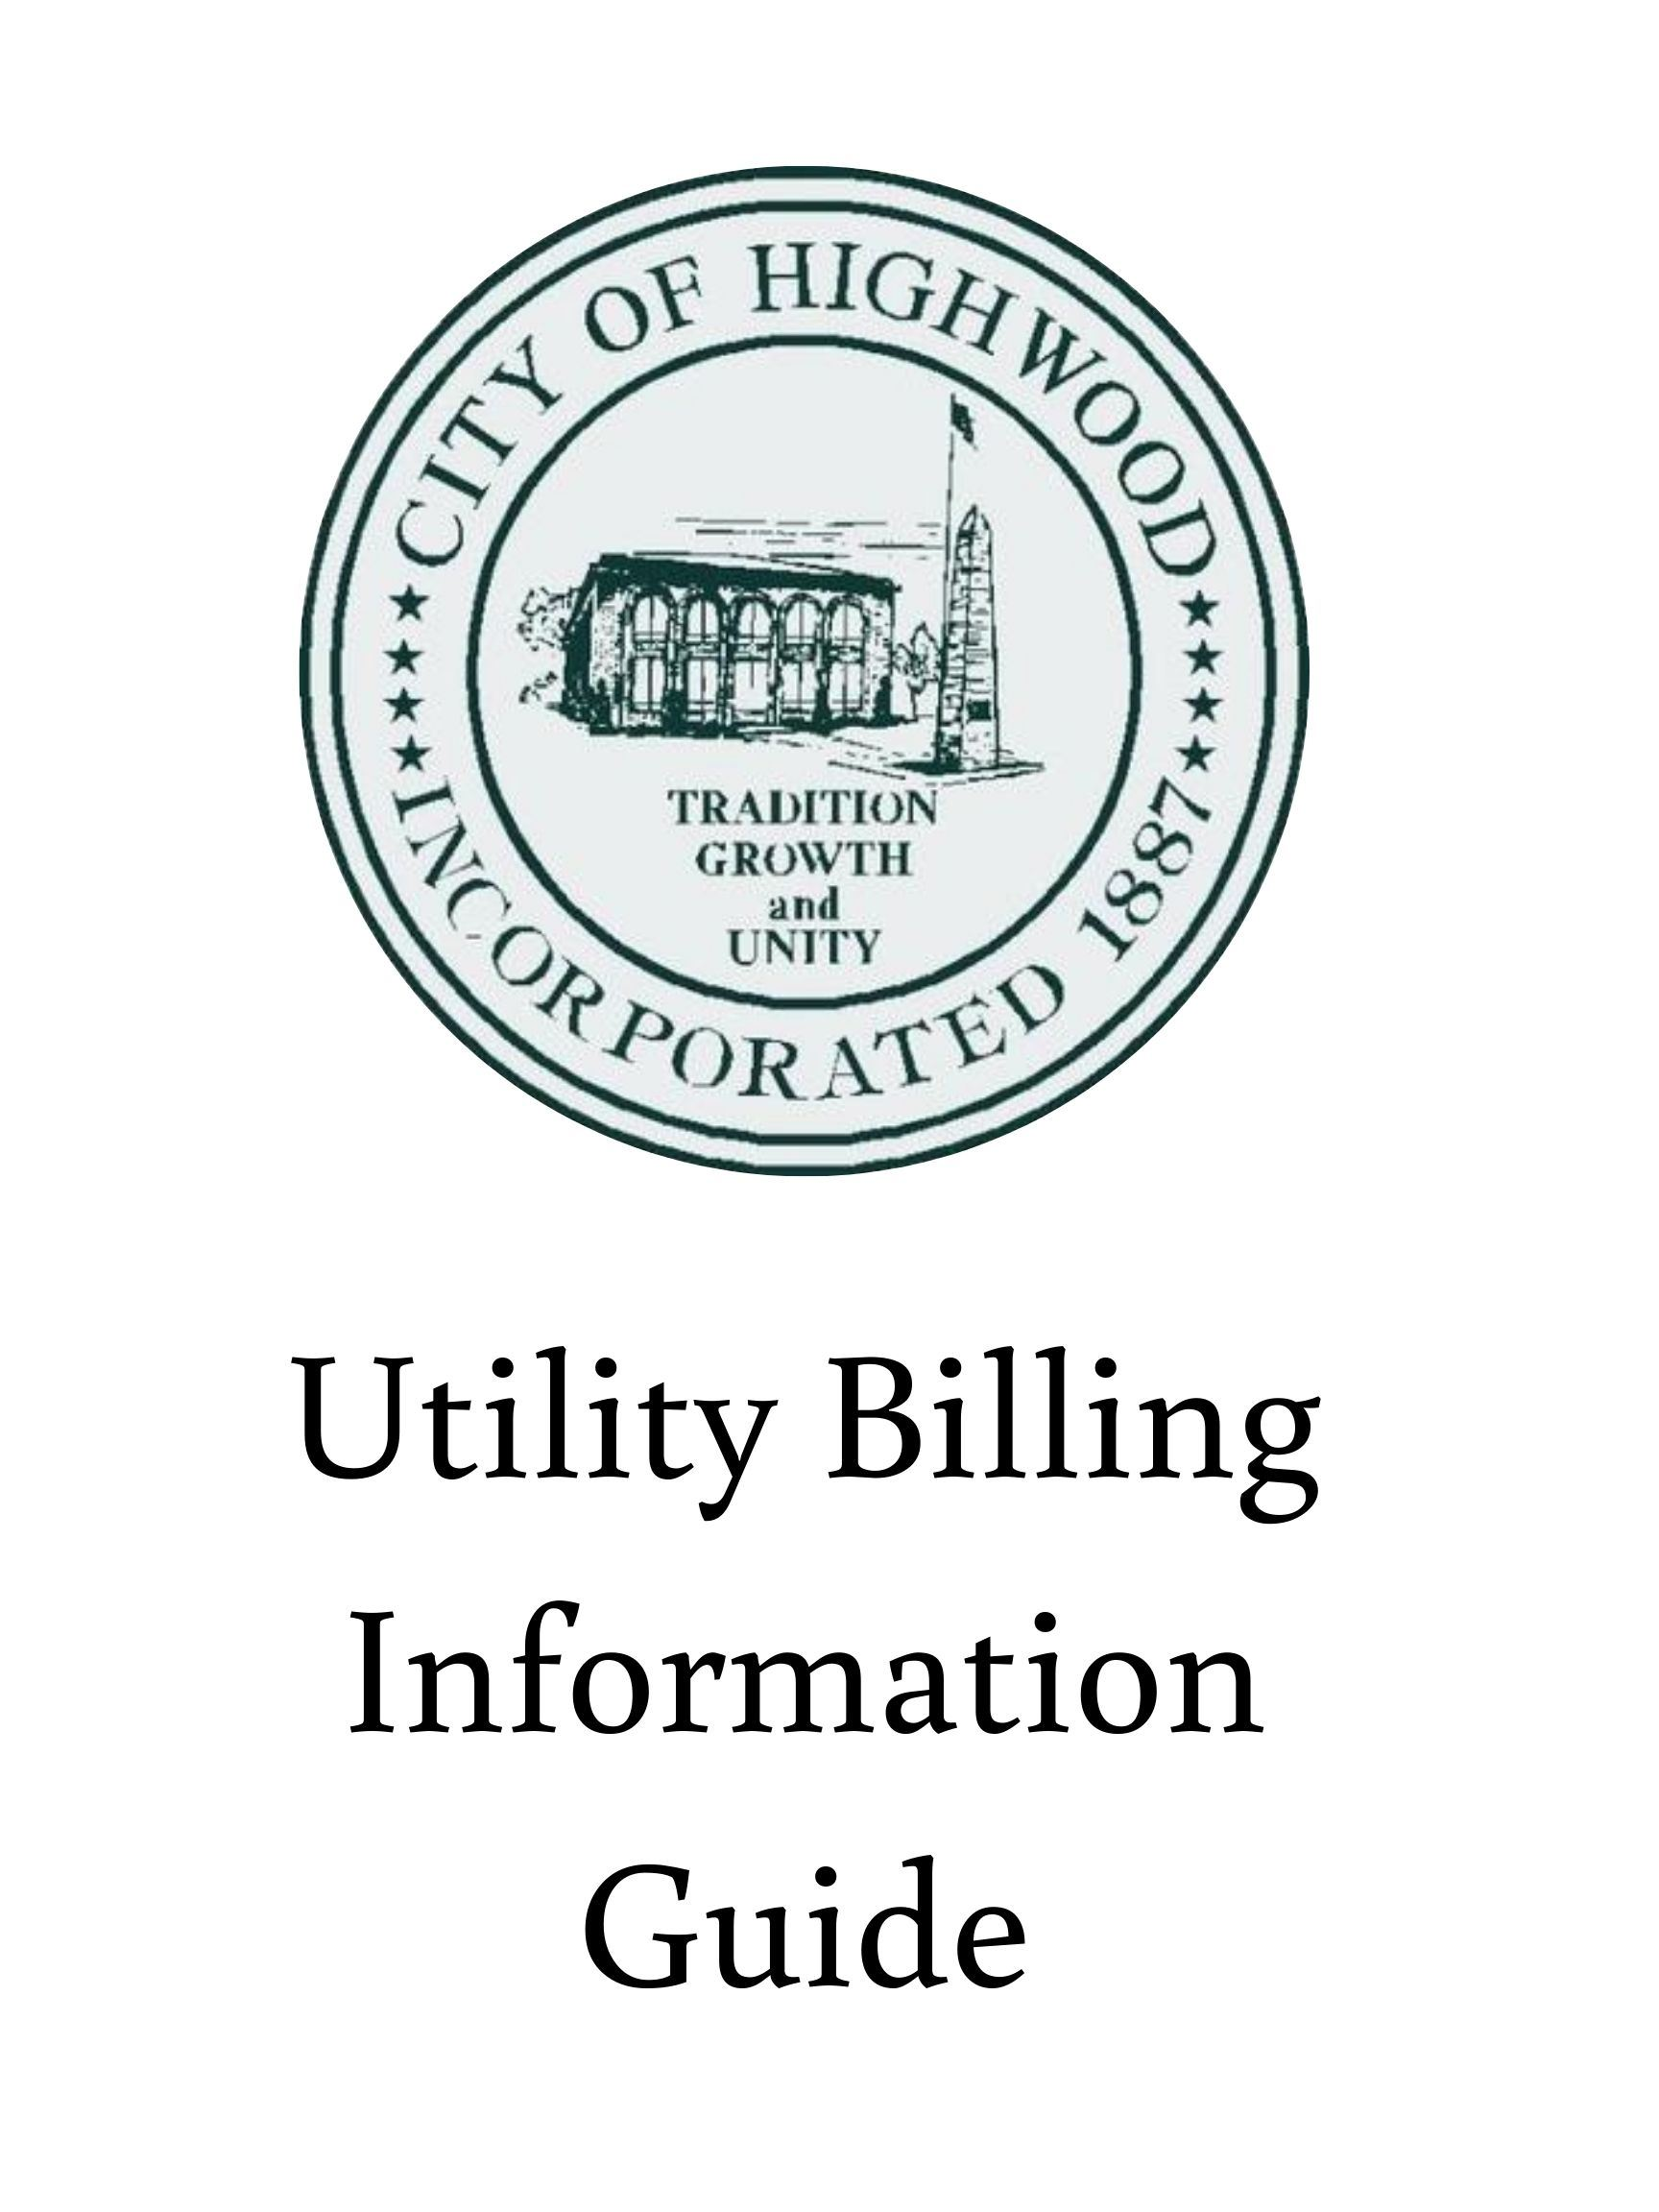 Utility Billing Information Guide